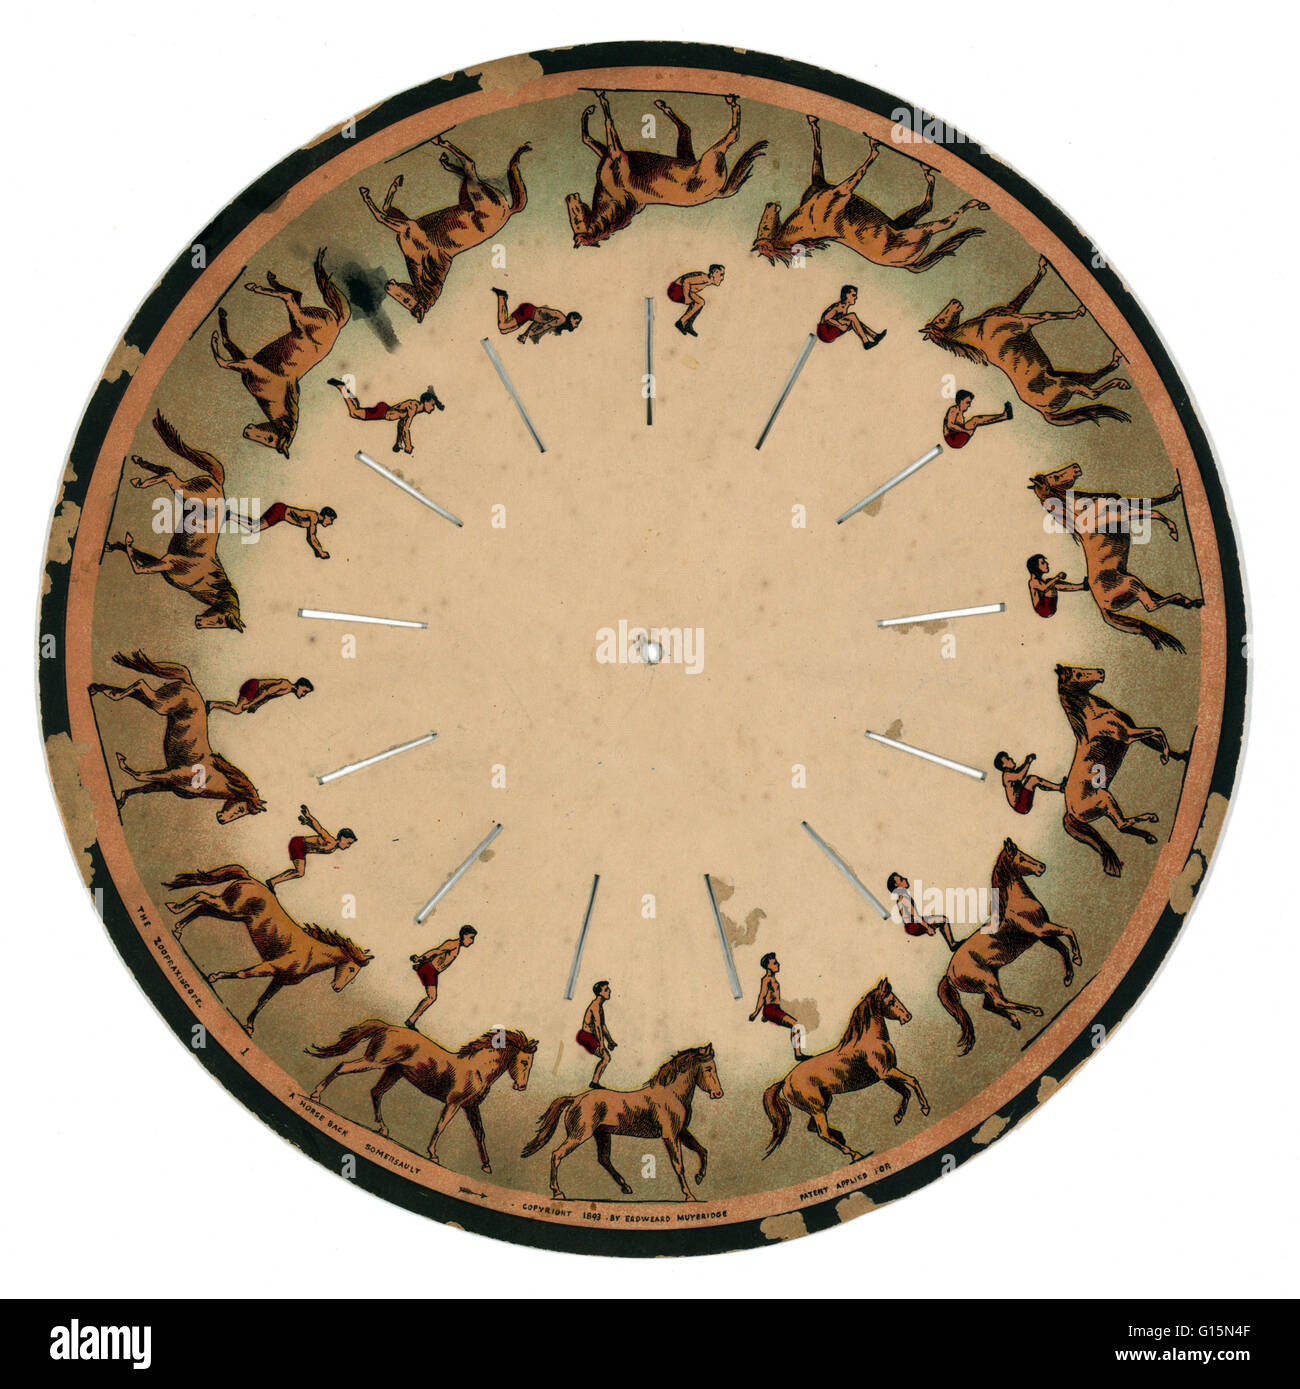 Muybridge Zoopraxiscope, Horseback Somersault, 1893. The zoopraxiscope is an early device for displaying motion - Stock Image